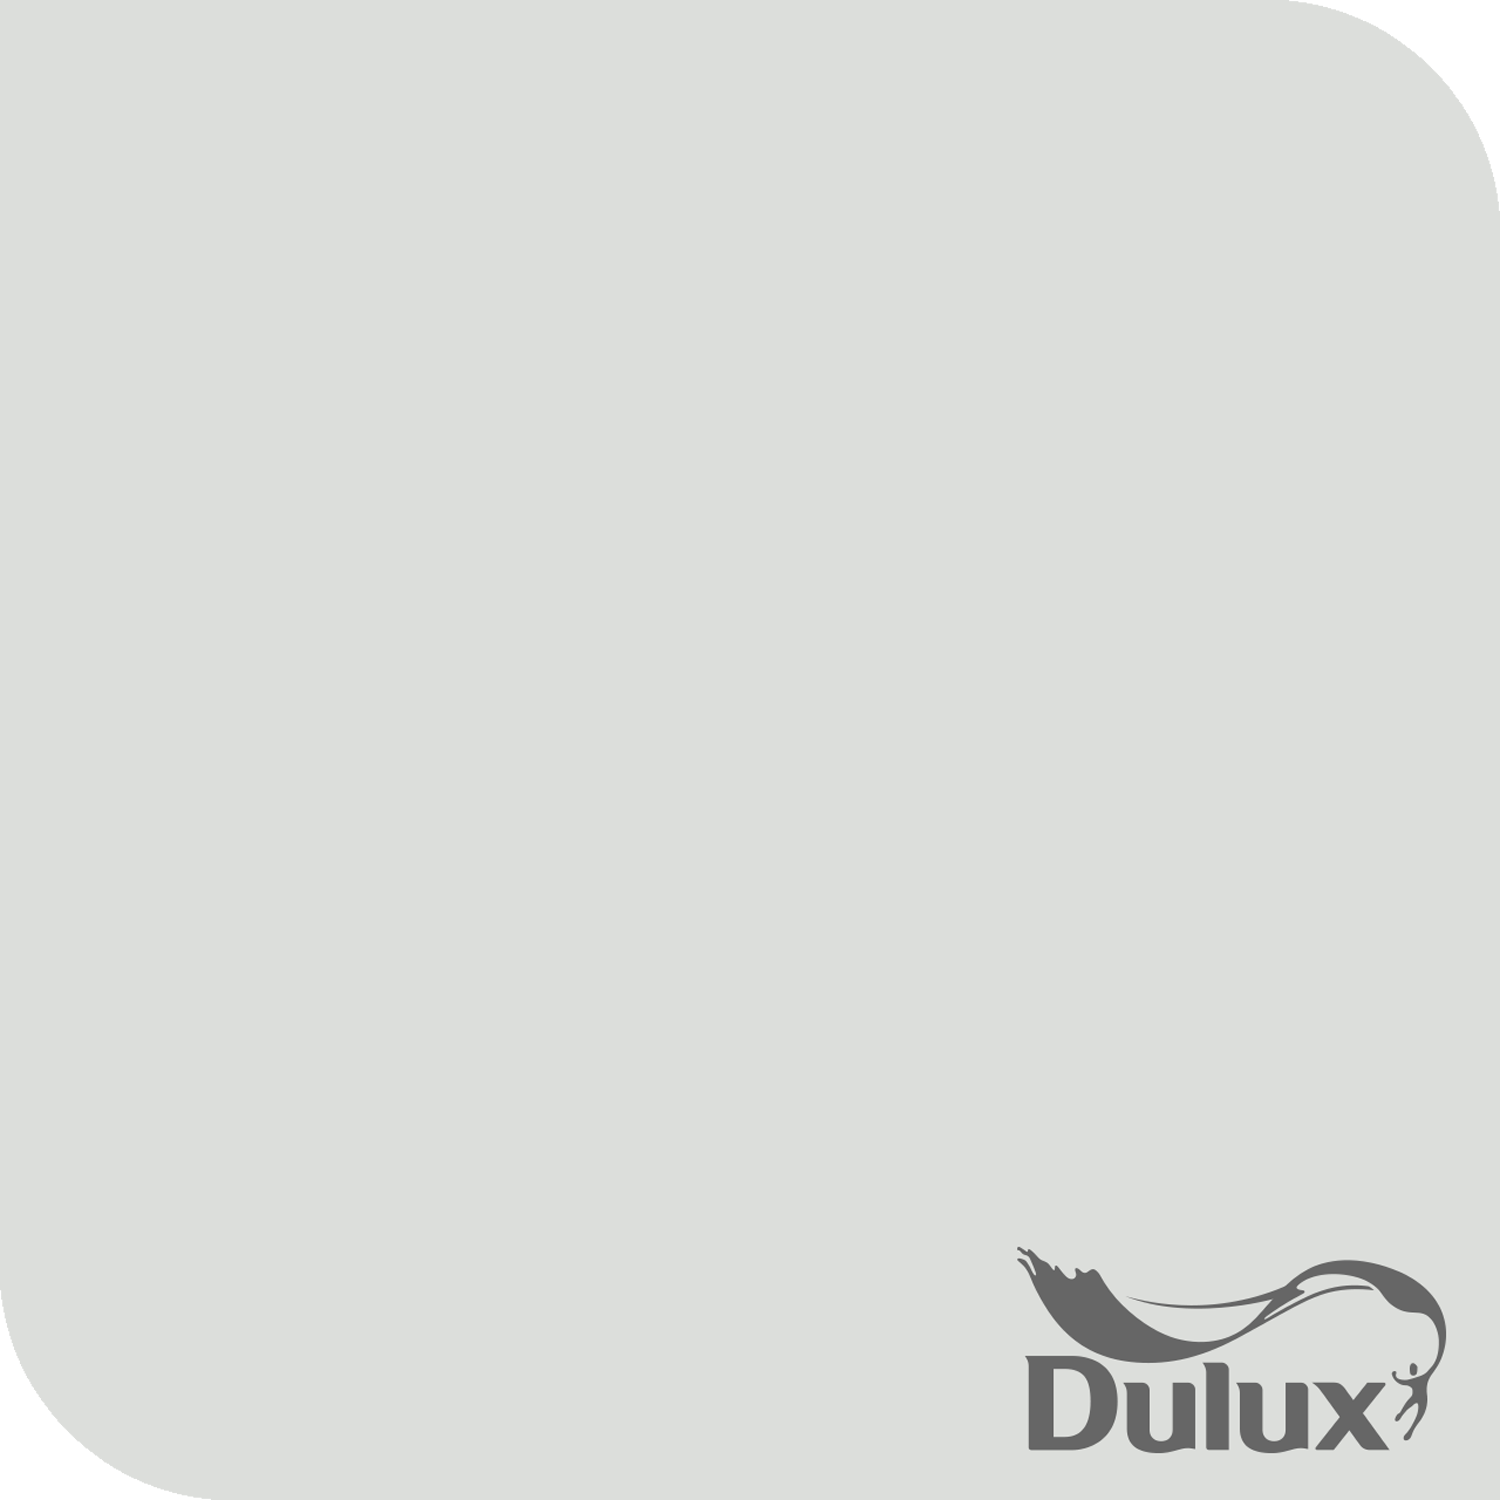 dulux 2.5l day at the beach paint, pearl grey | leekes